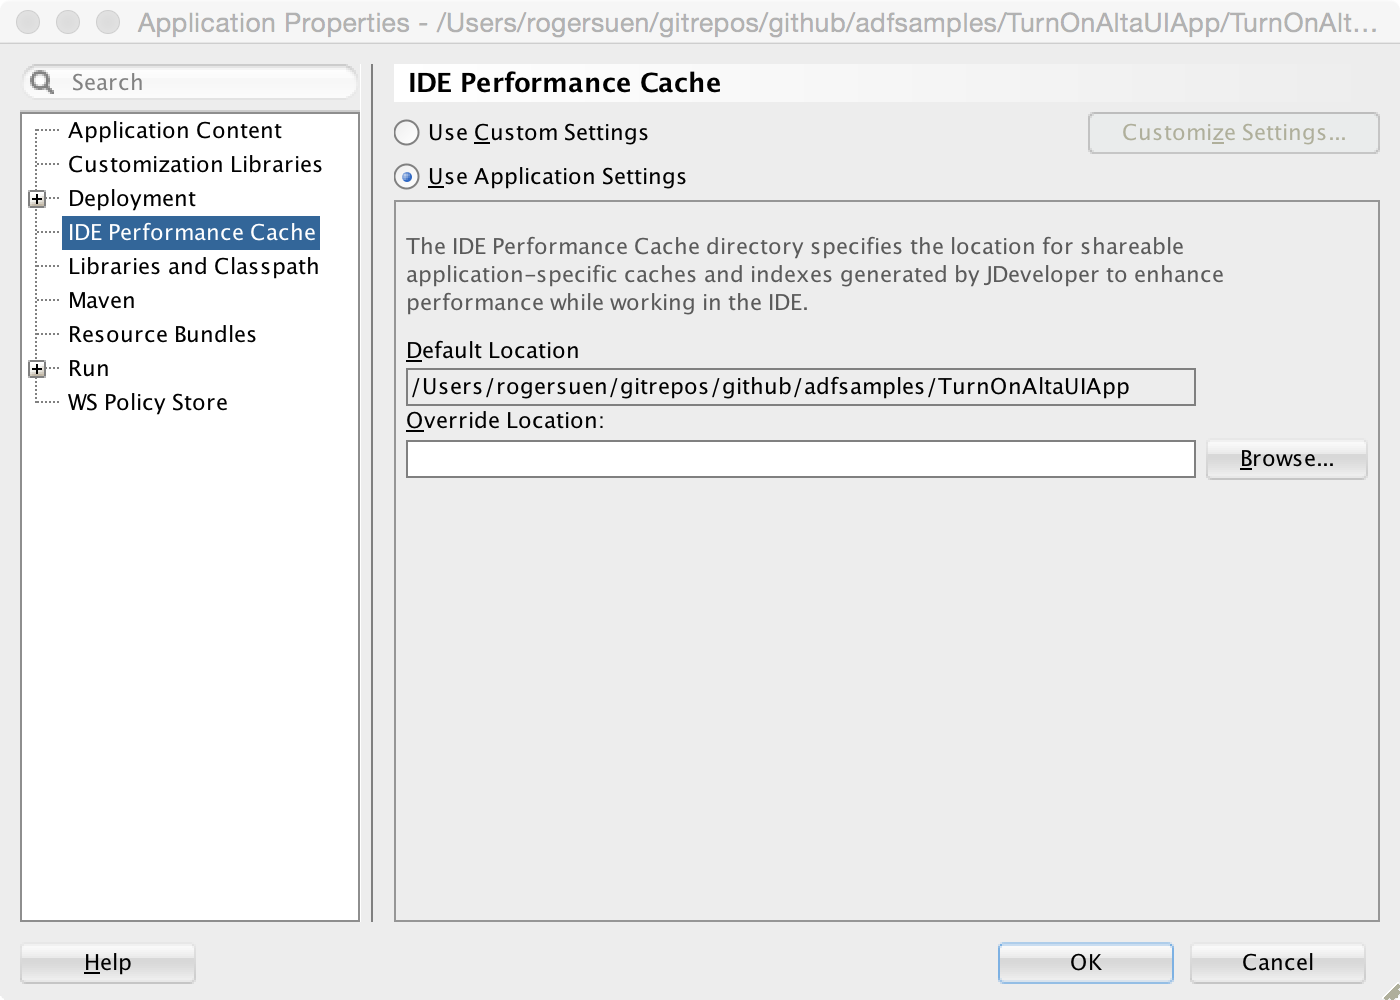 Image: IDE Performance Cache